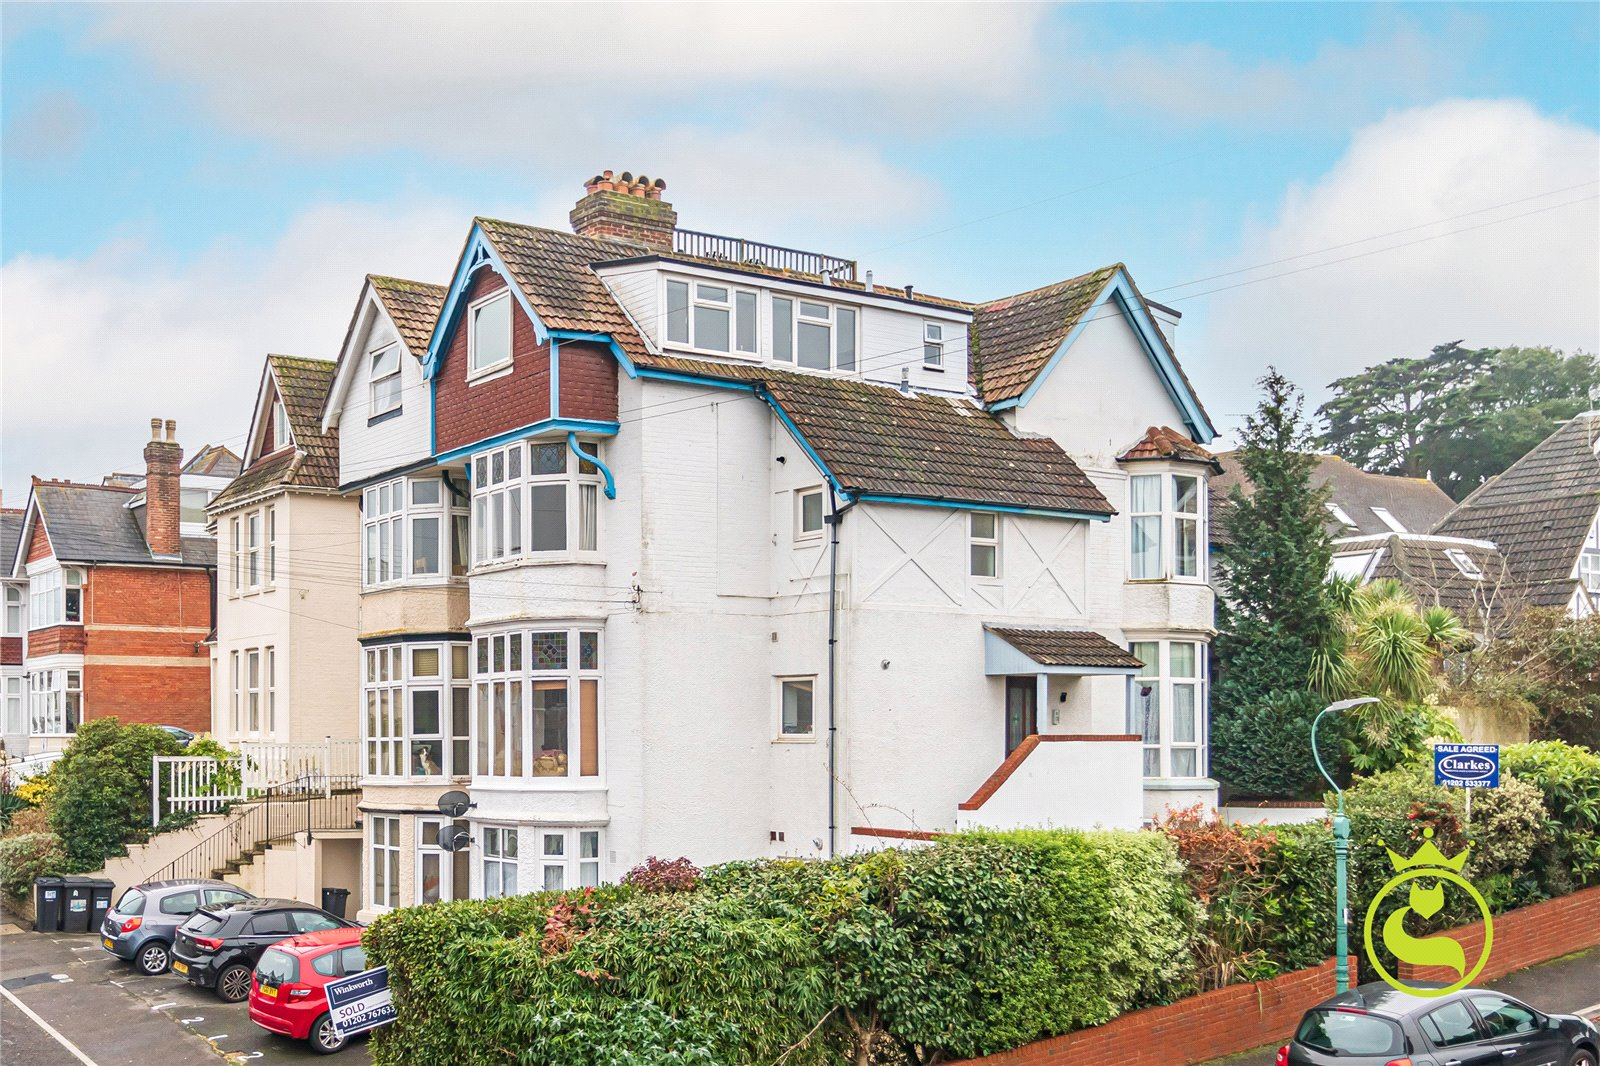 2 bed apartment to rent in Earle Road, Bournemouth, BH4